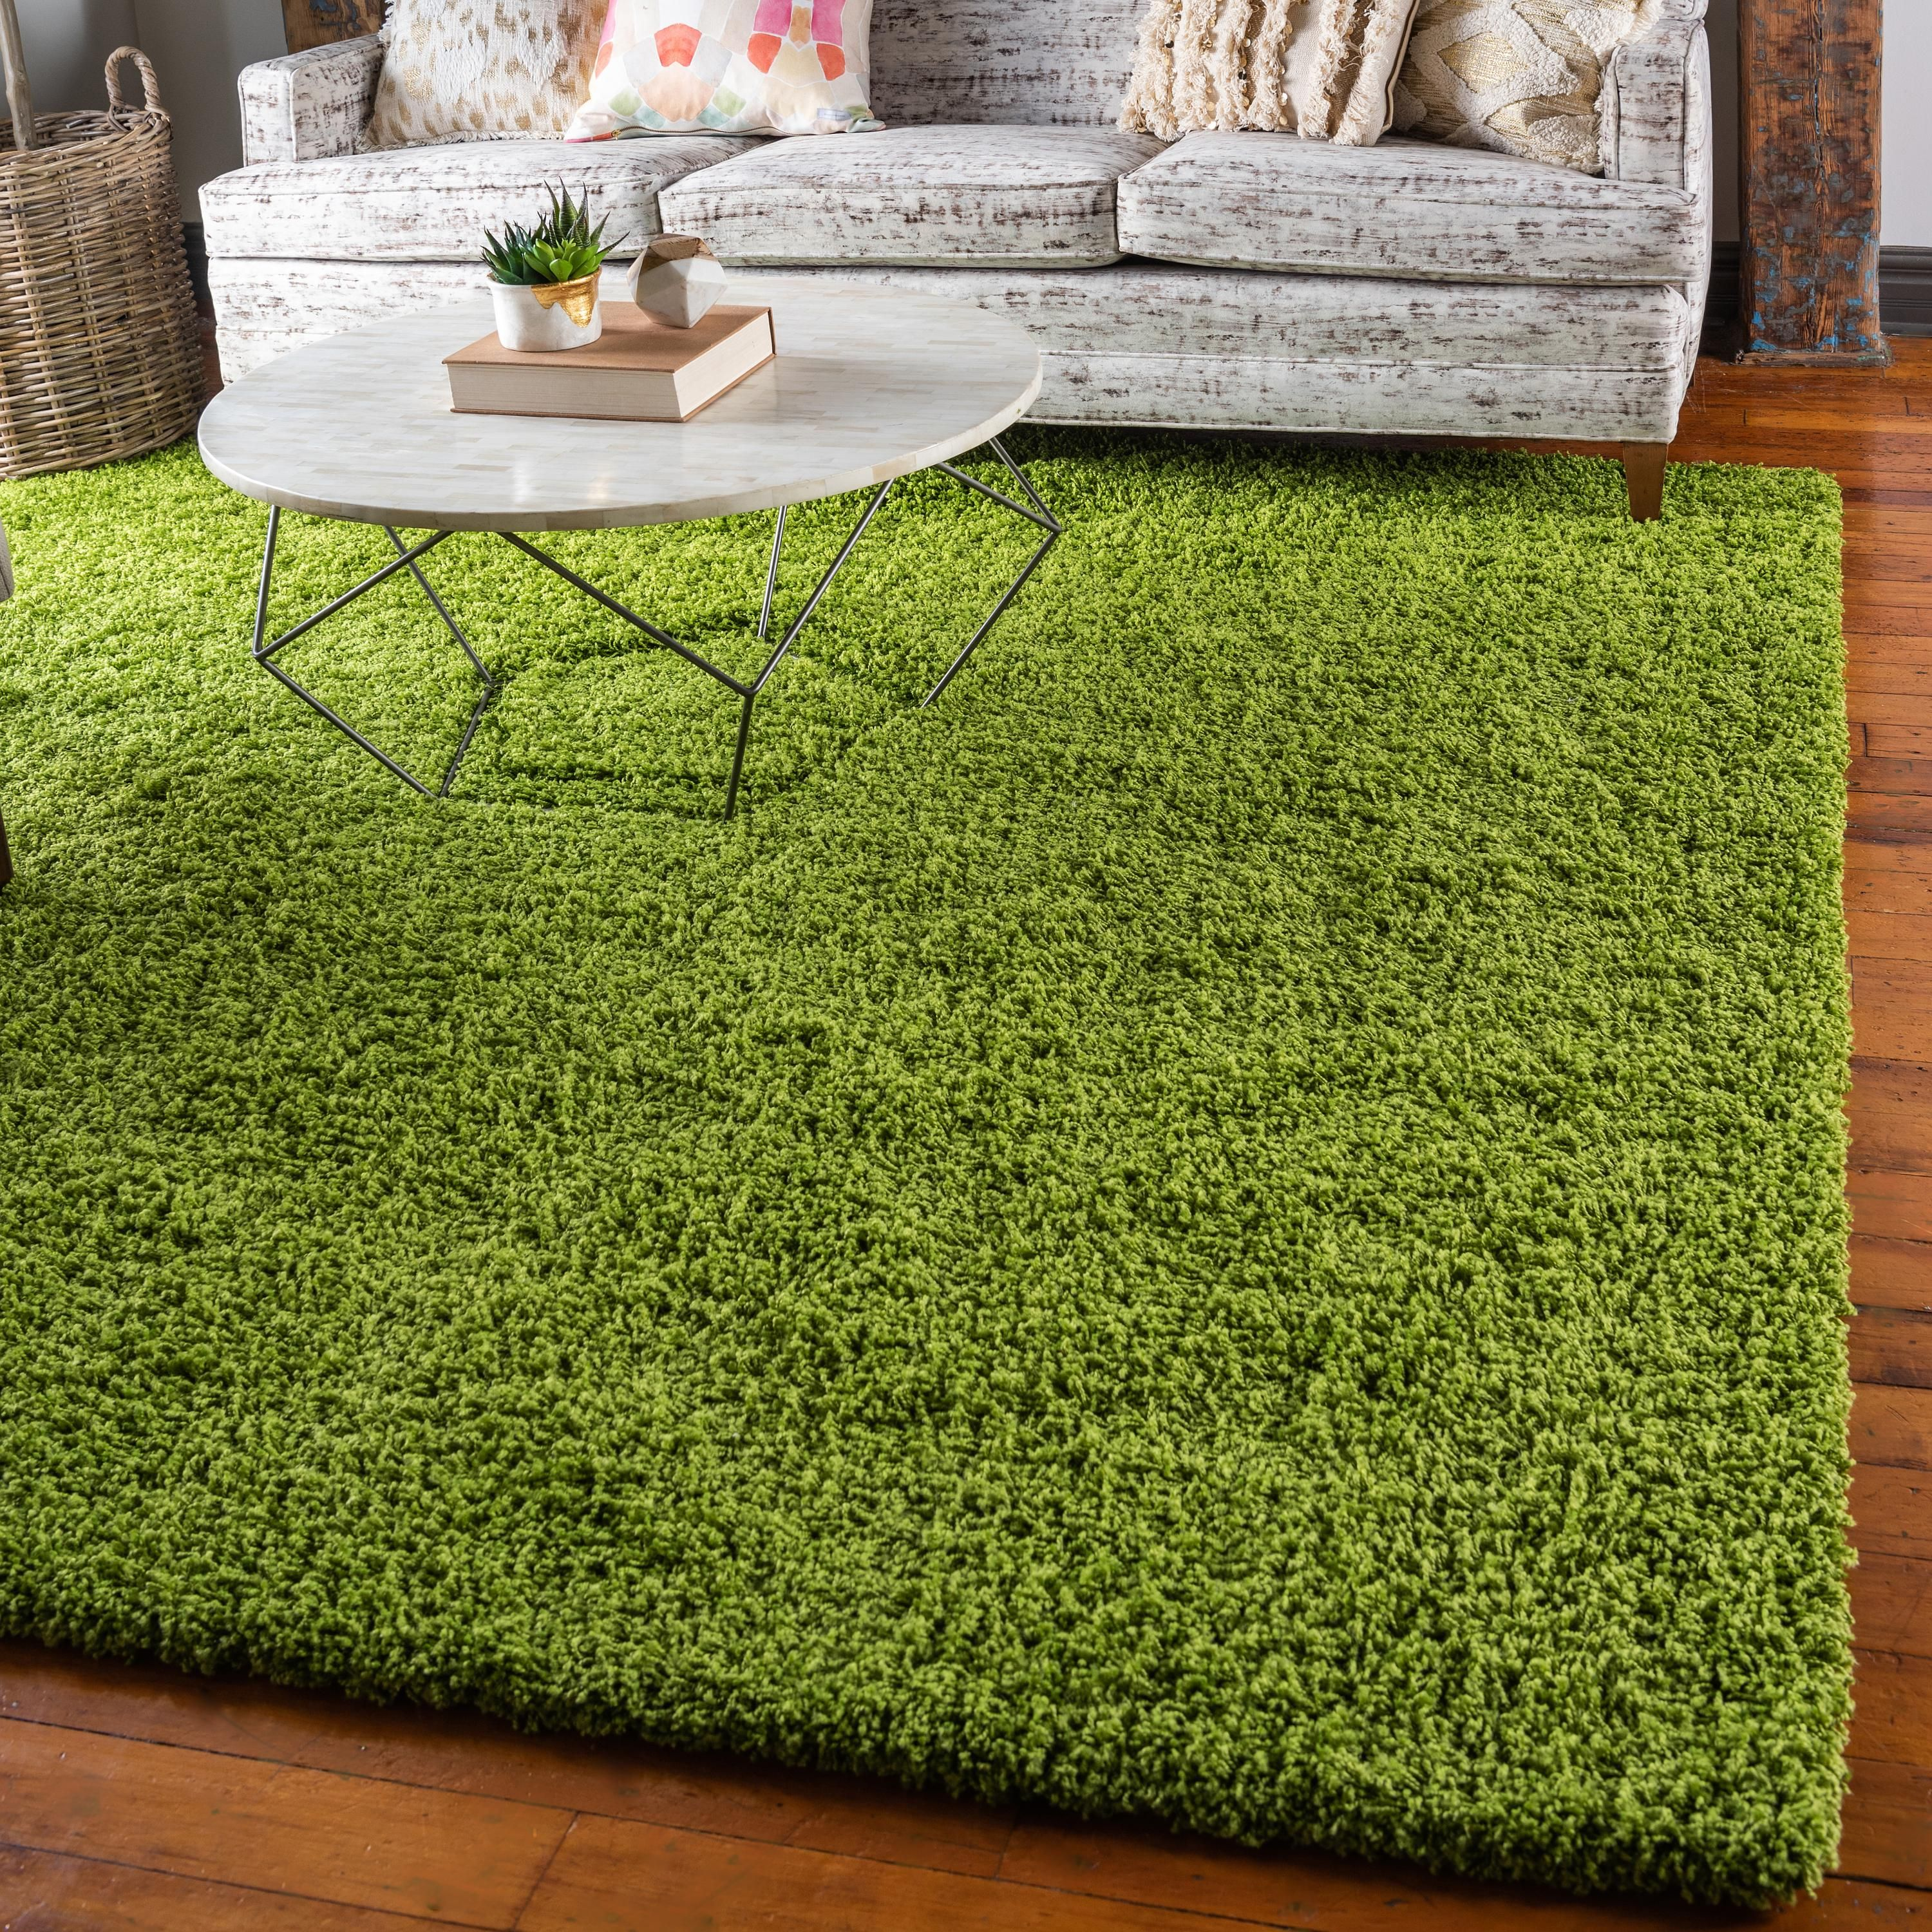 Grass Green 8 2 X 8 2 Solid Shag Square Rug Rugs Com Green Area Rugs Green Rug Bedroom Grass Carpet